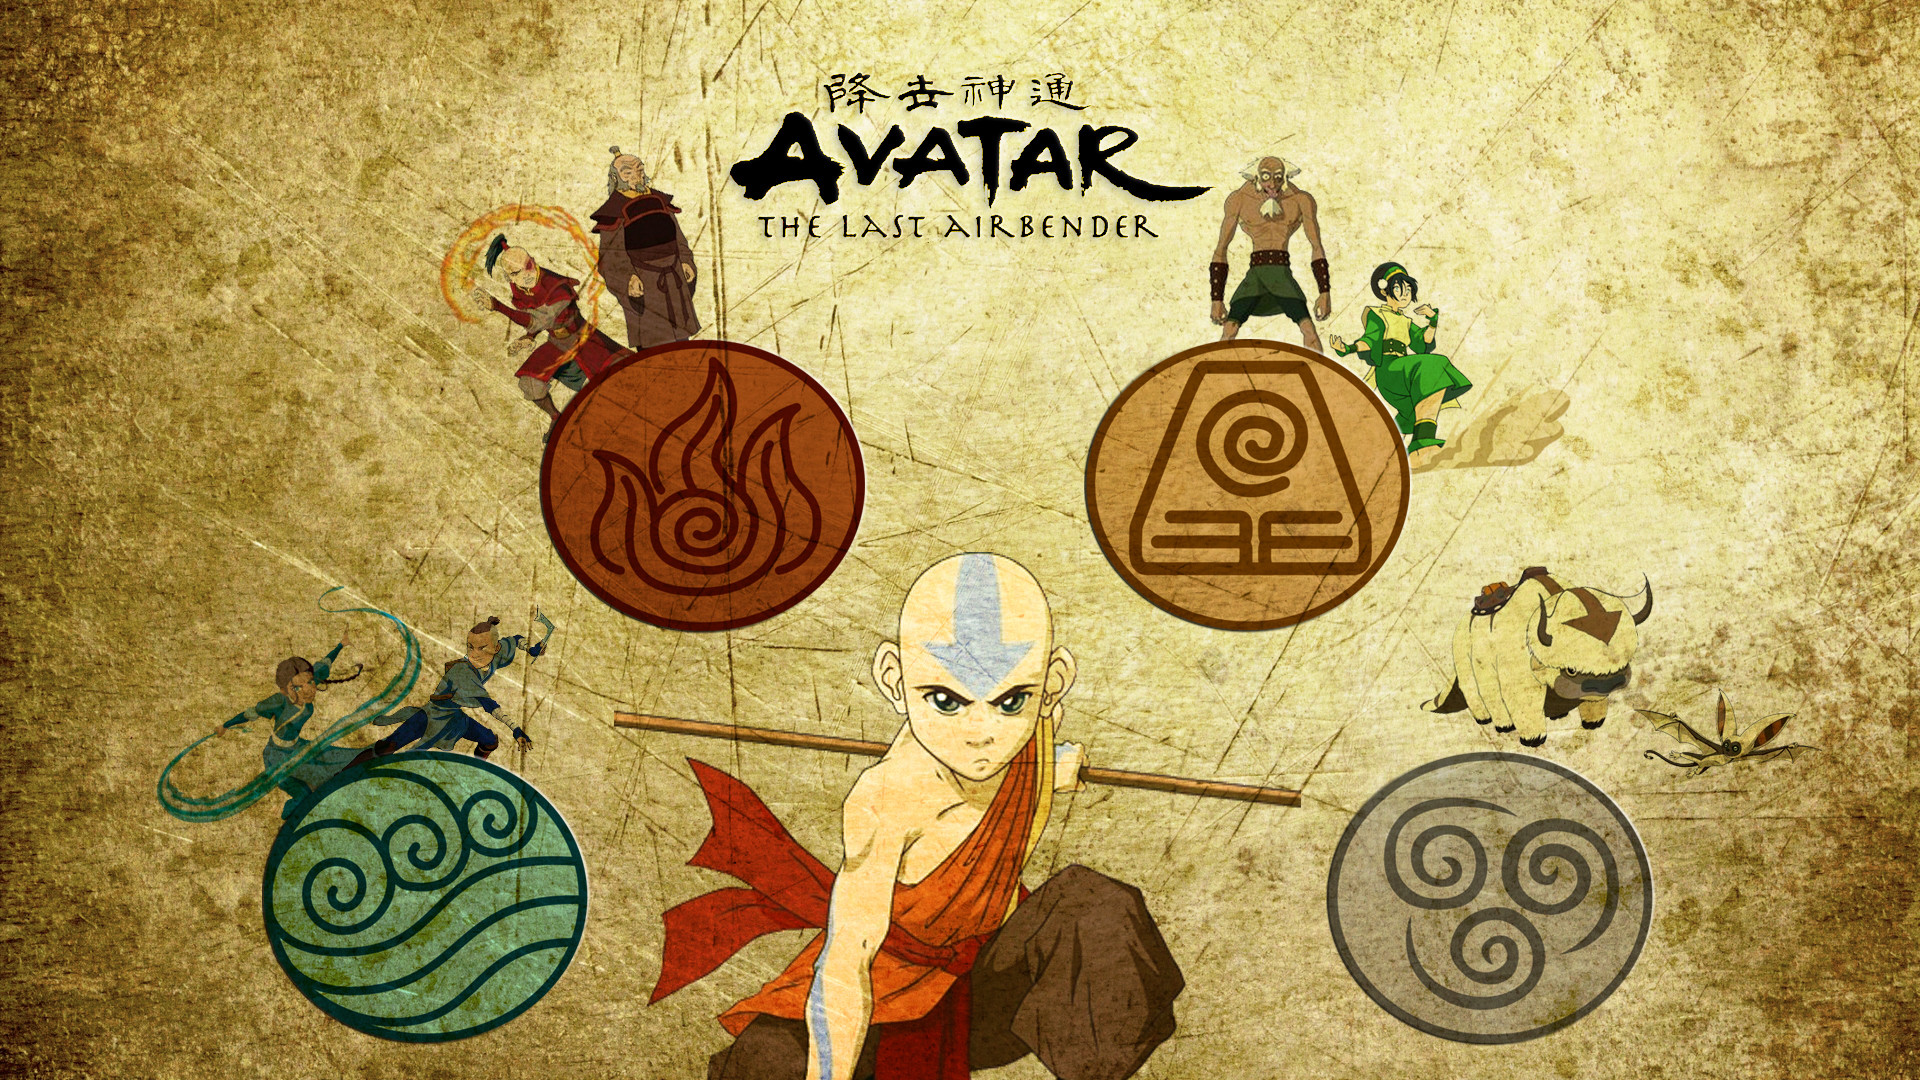 Avatar The Last Airbender Wallpapers 1920x1080 Download